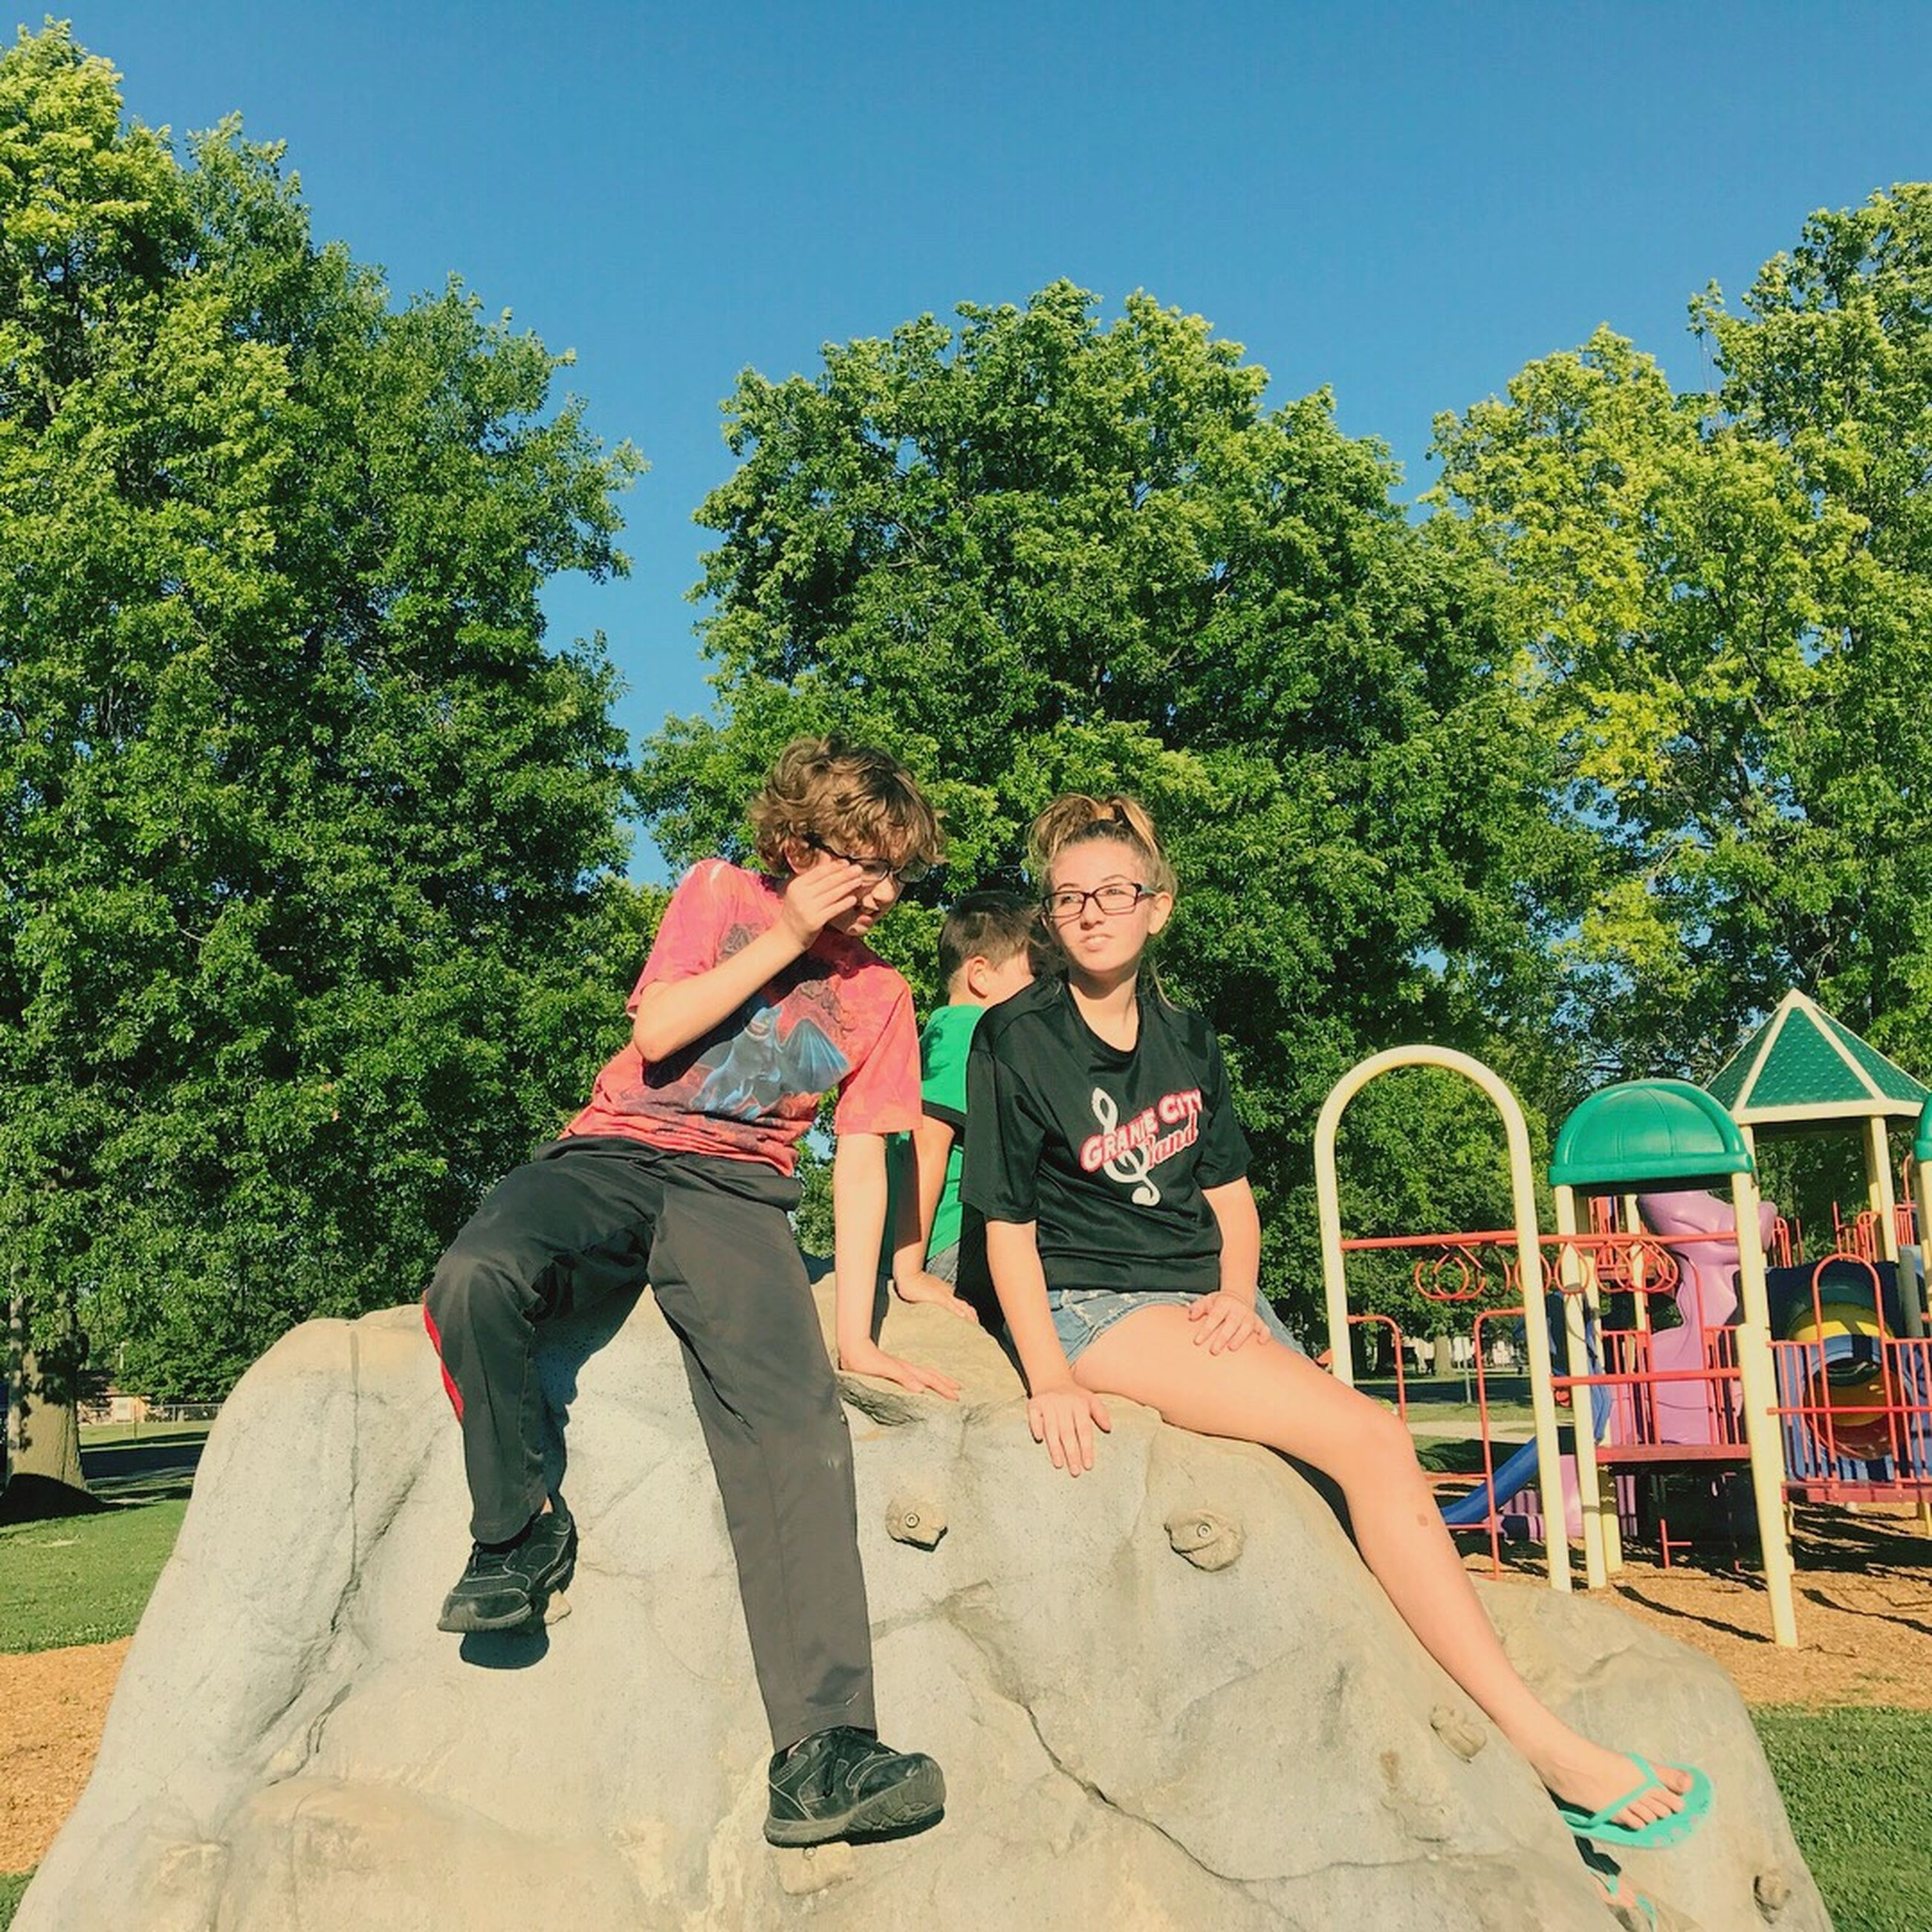 full length, leisure activity, tree, happiness, fun, smiling, casual clothing, young women, togetherness, day, two people, young adult, friendship, park - man made space, lifestyles, outdoors, young men, sitting, playing, sky, childhood, real people, people